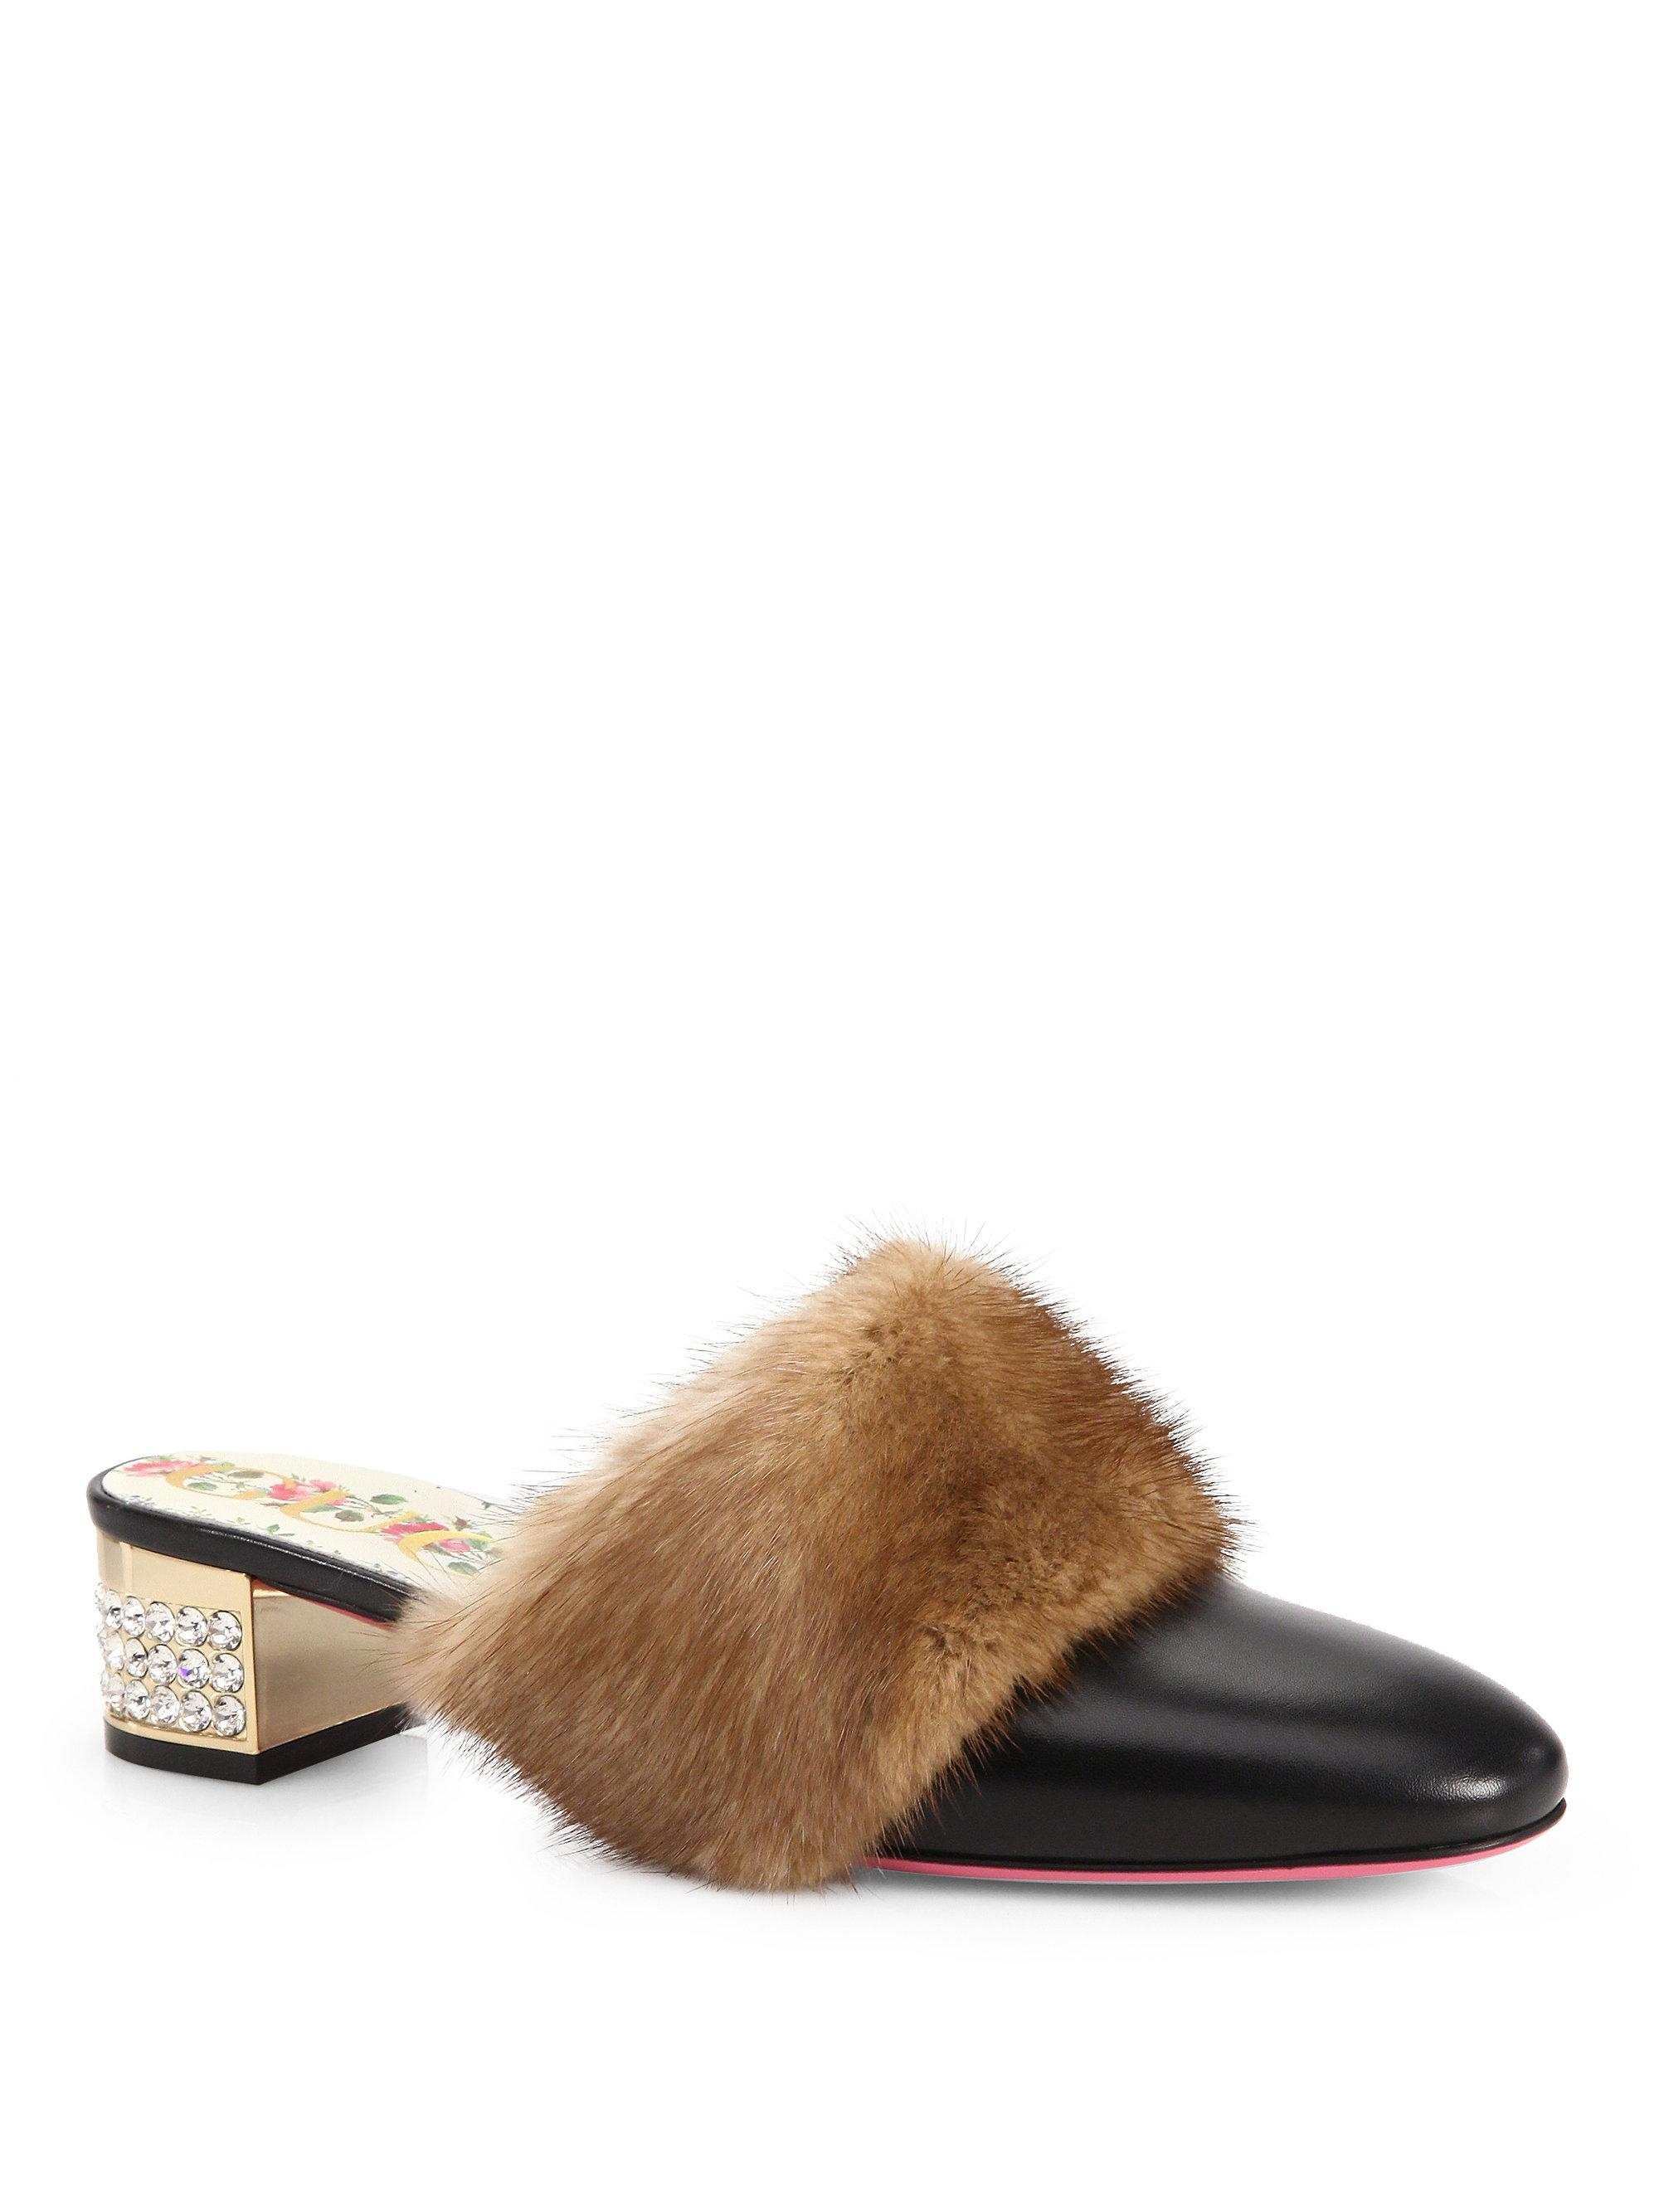 Gucci Loafer Mules leather crystals mink brown R21yoxyC